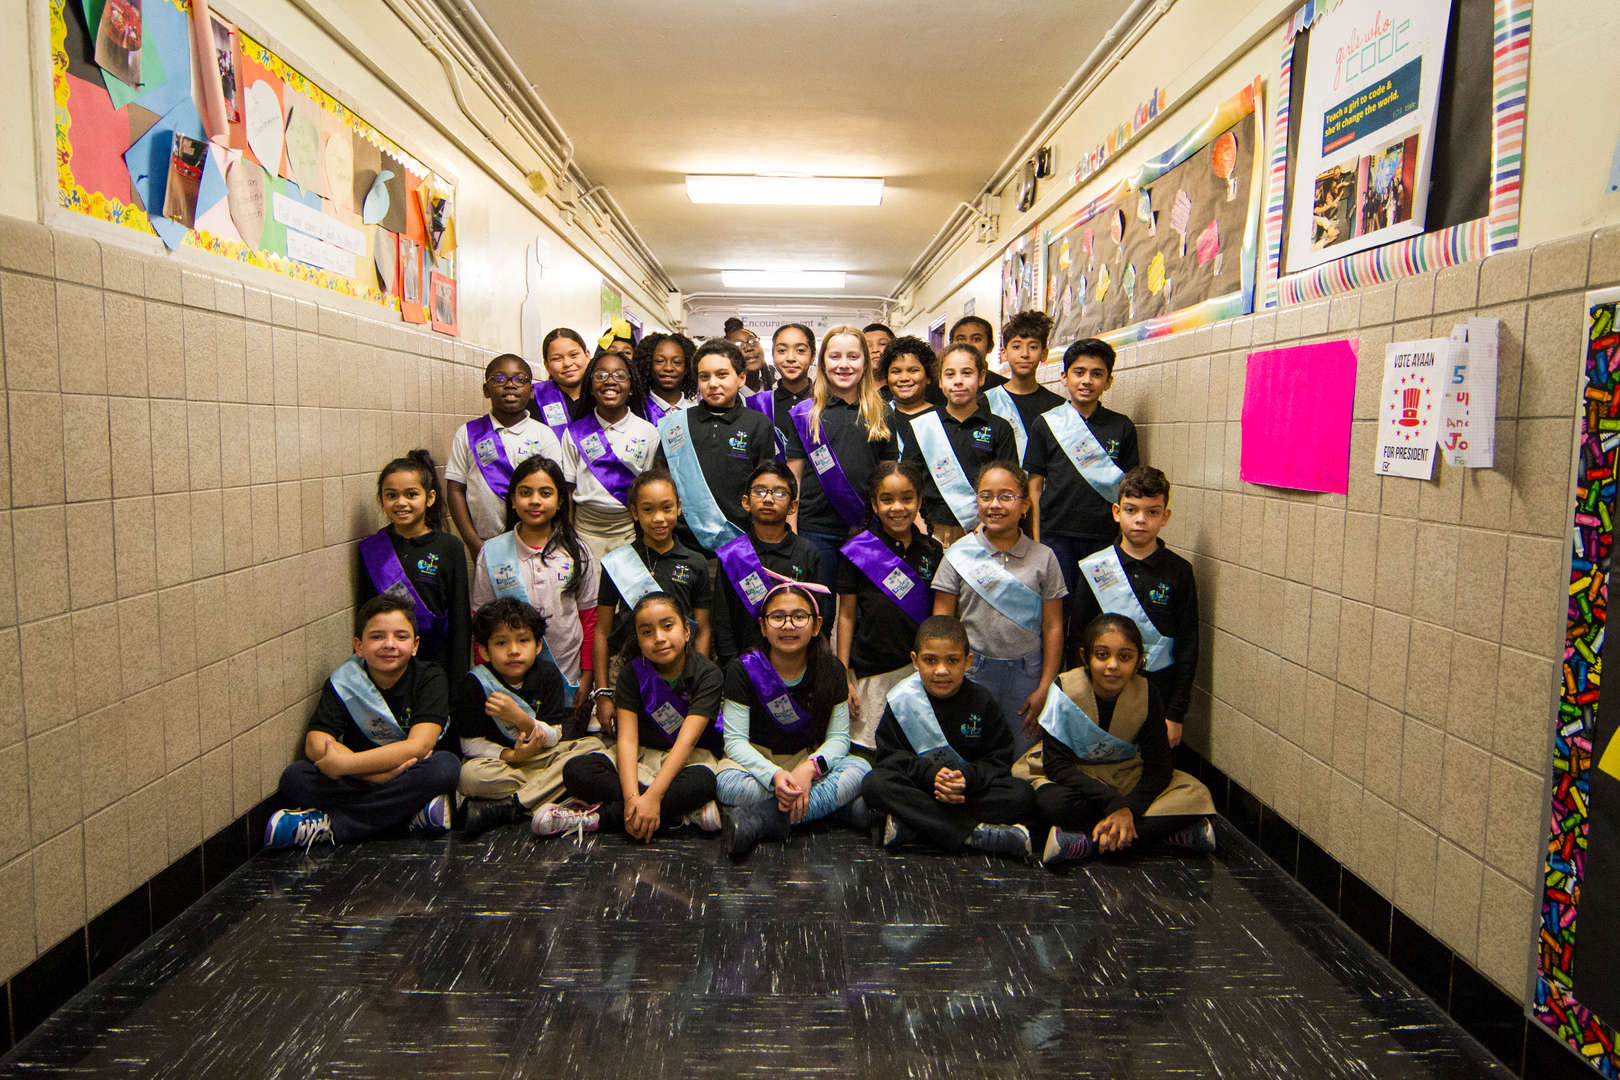 Students posing in hallway